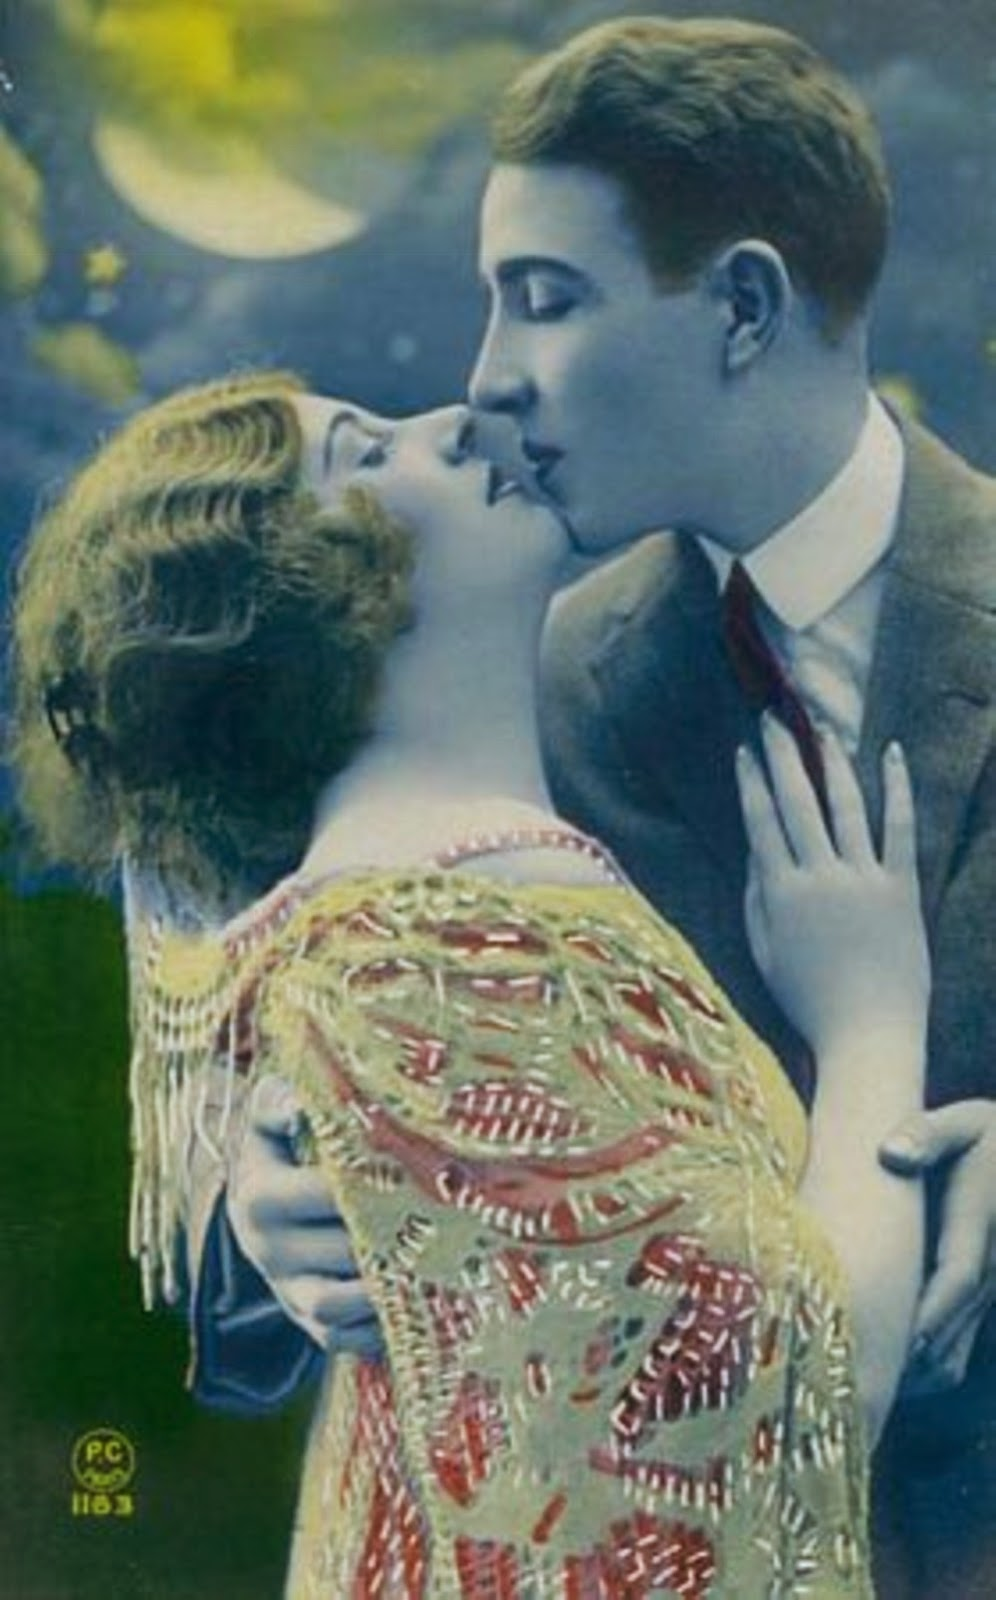 1920s man and woman romantic clinch, romance, dating, couple.Kissing